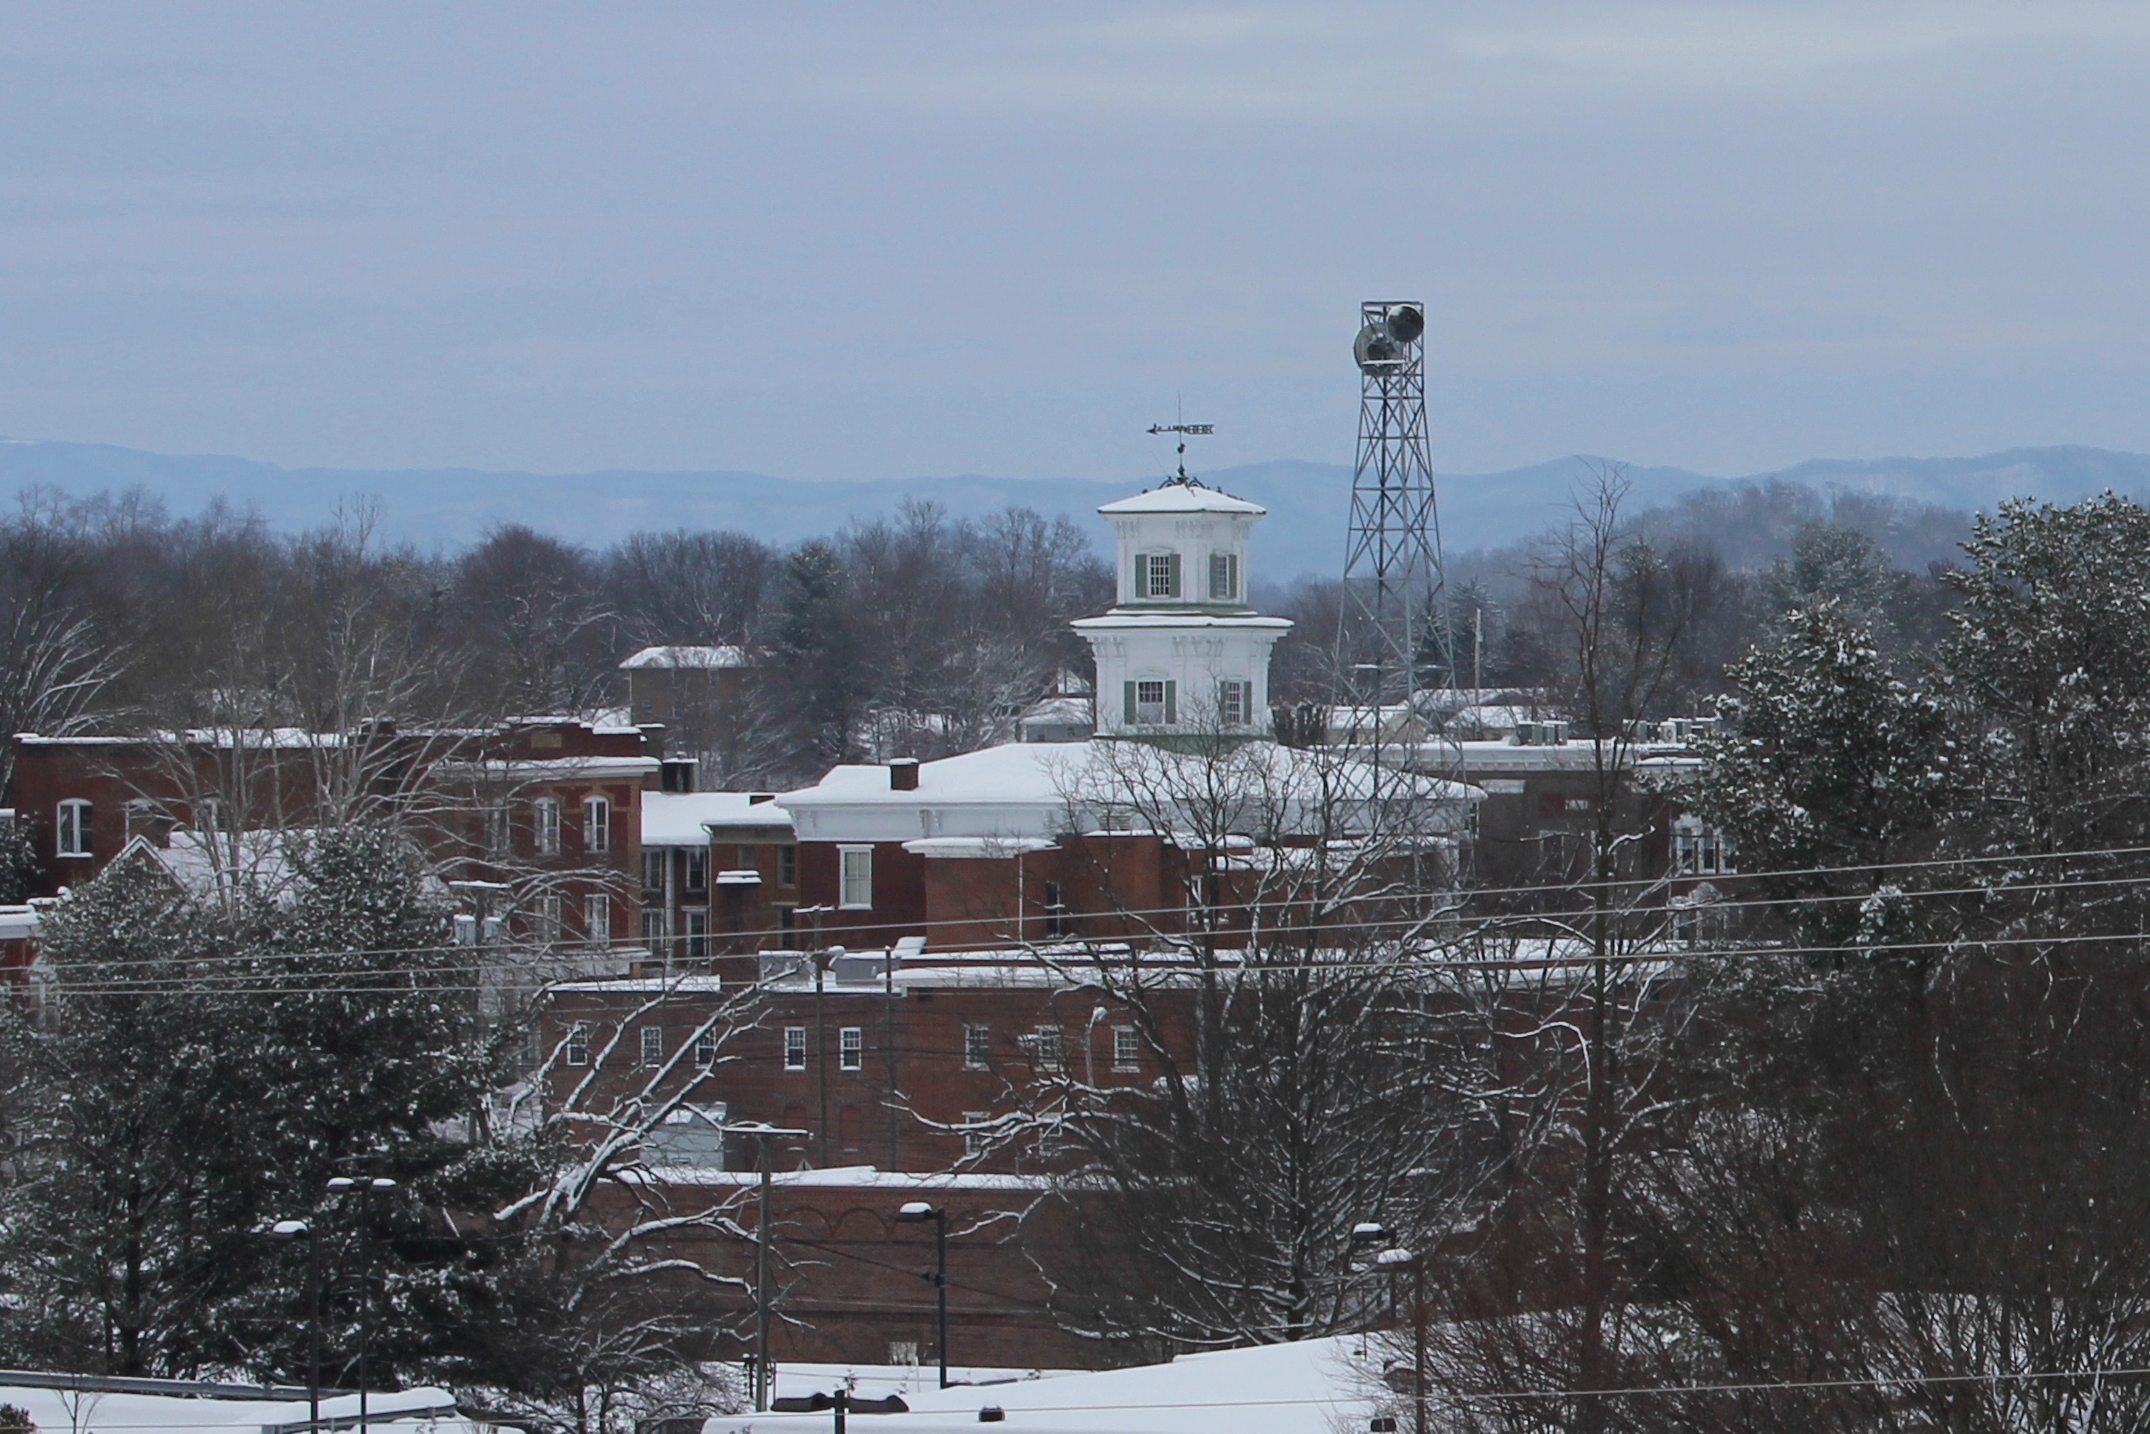 Washington Courthouse Cupola with Holston Mountain in the background, February 21, 2015